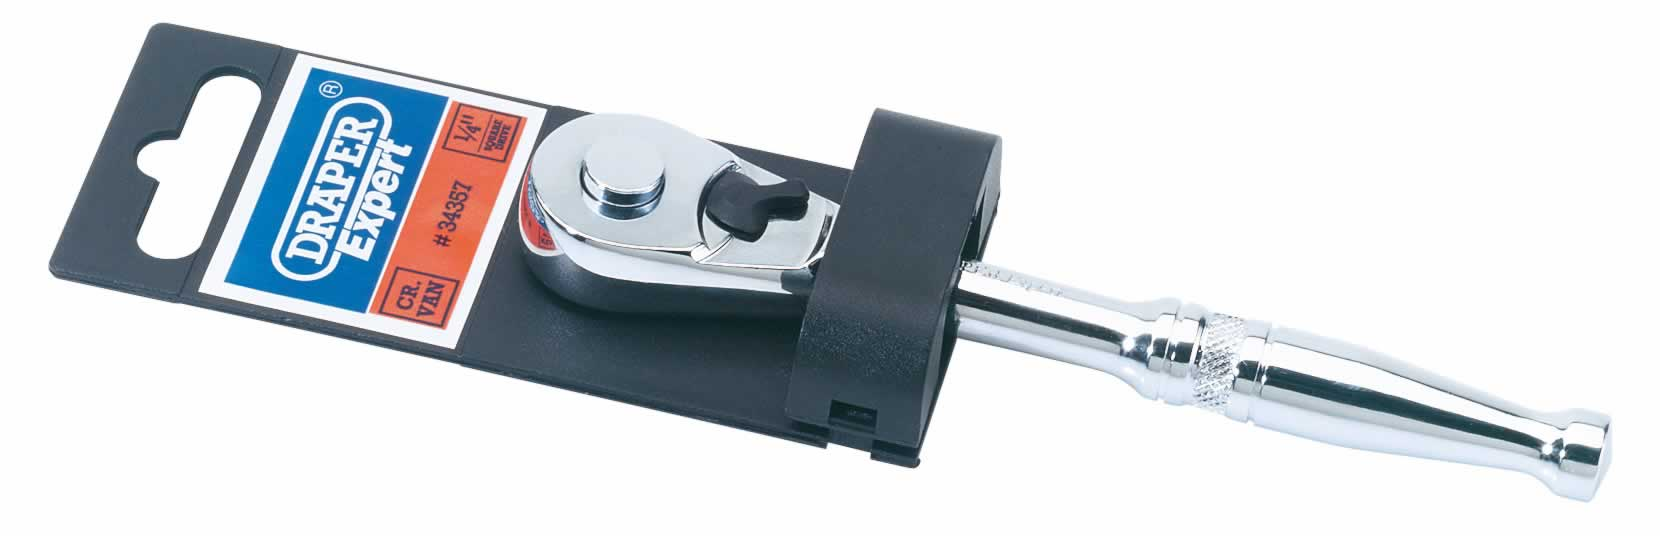 "EXPERT 1/4"" SQUARE DRIVE QUICK RELEASE REVERSIBLE RATCHET"